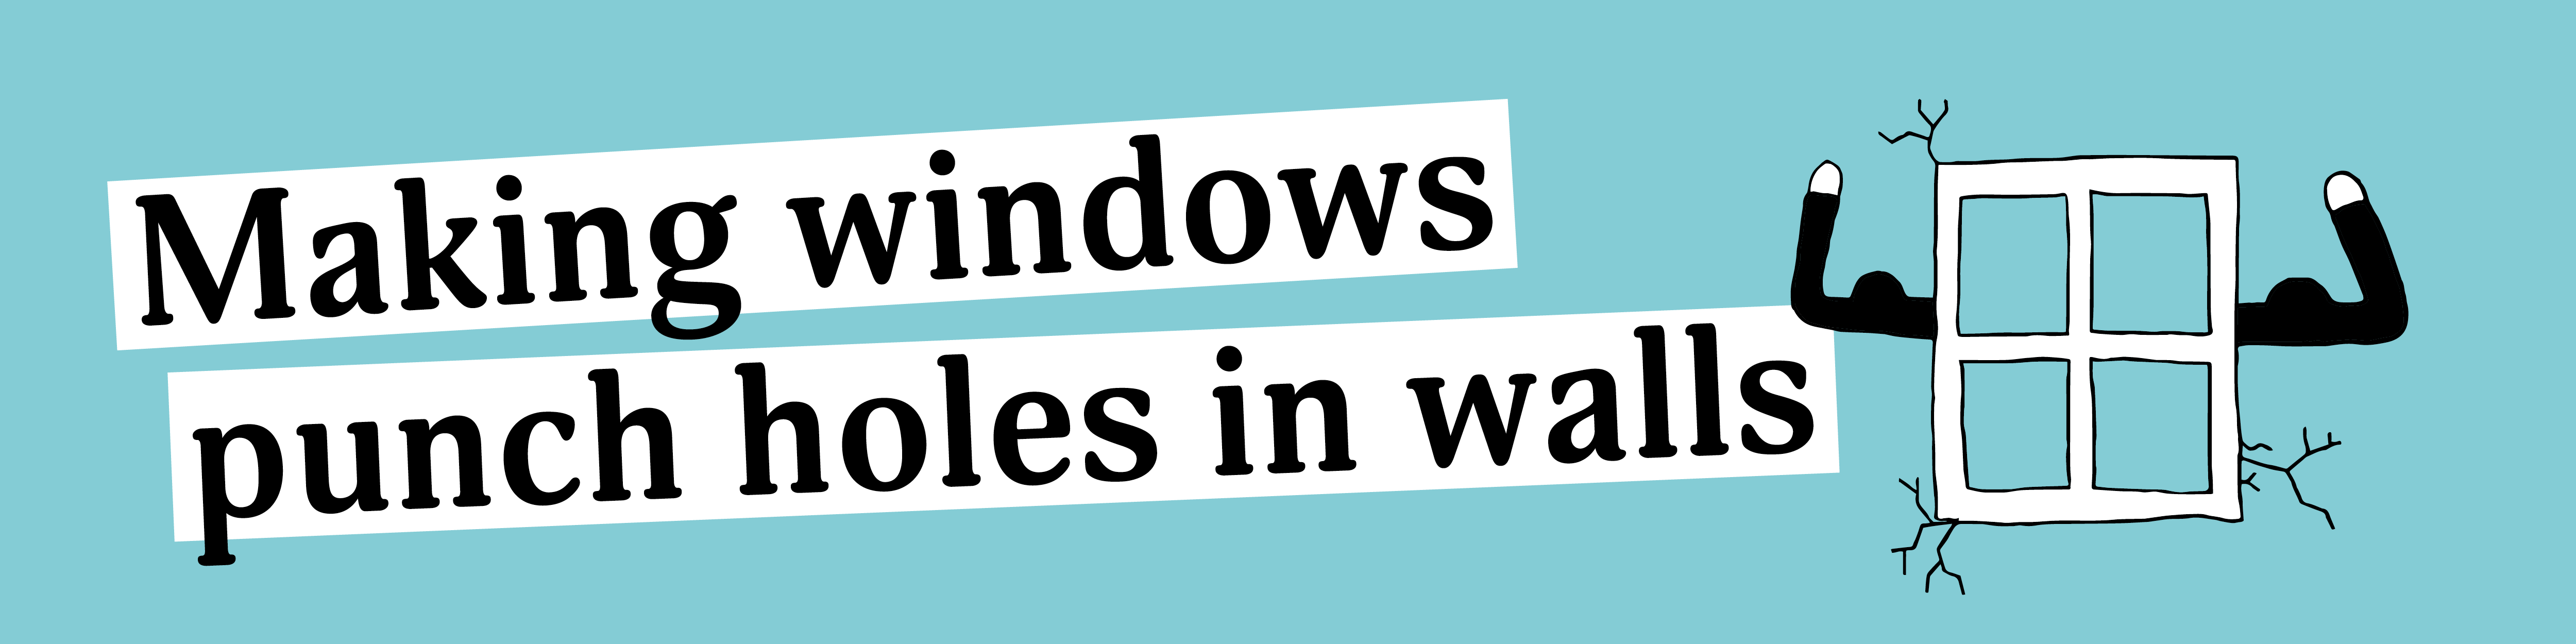 Making windows punch holes in walls. How to generate stand-out ideas.